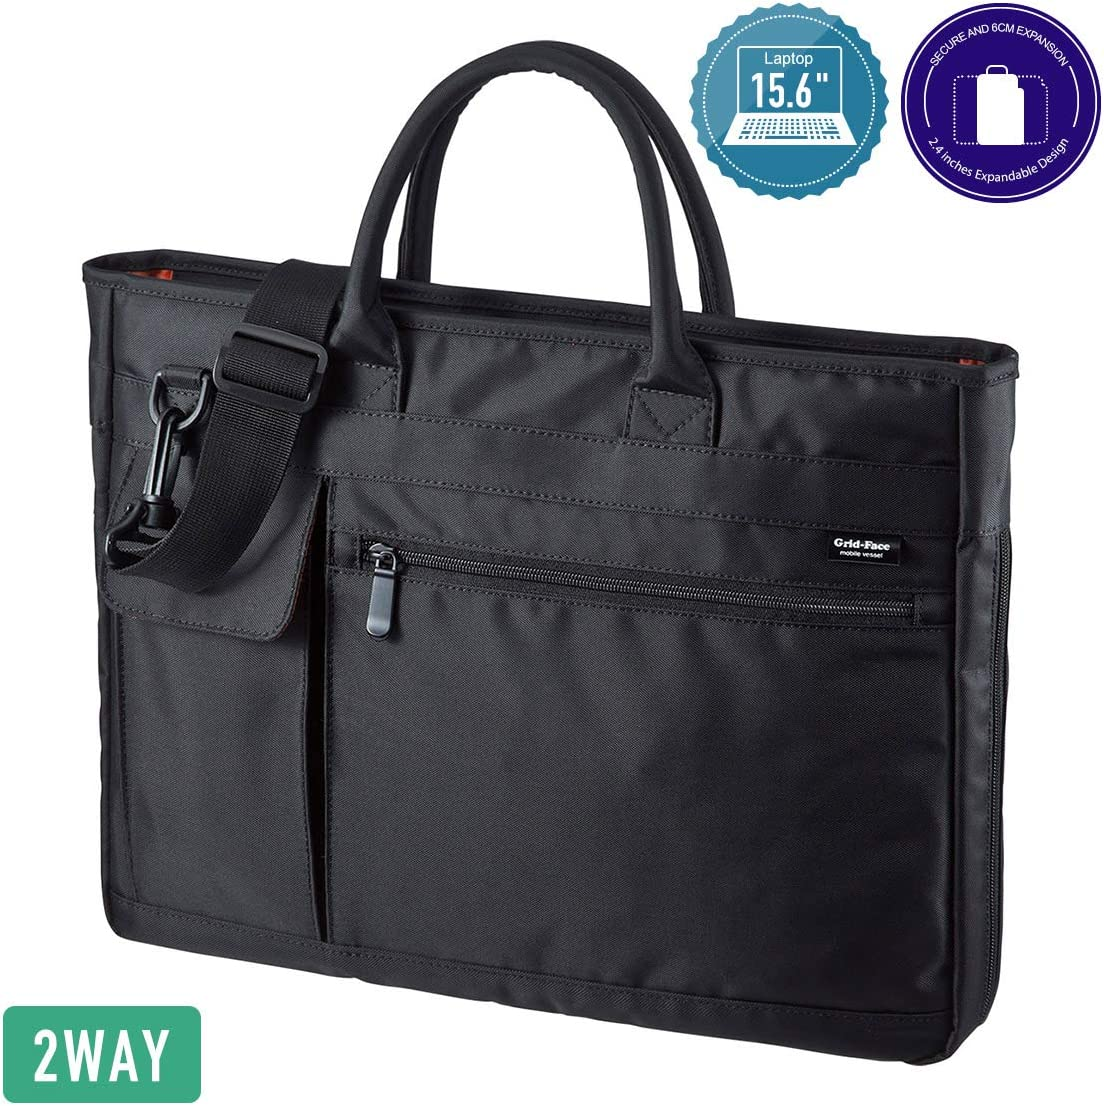 SANWA 15.6-inch Laptop Computer & Tablet Bag, Expandable Business Briefcases with Organizer, Shoulder Bag with Strap, Lightweight Handbag, Compatible with MacBook Dell Lenovo Notebook, for Men/Women